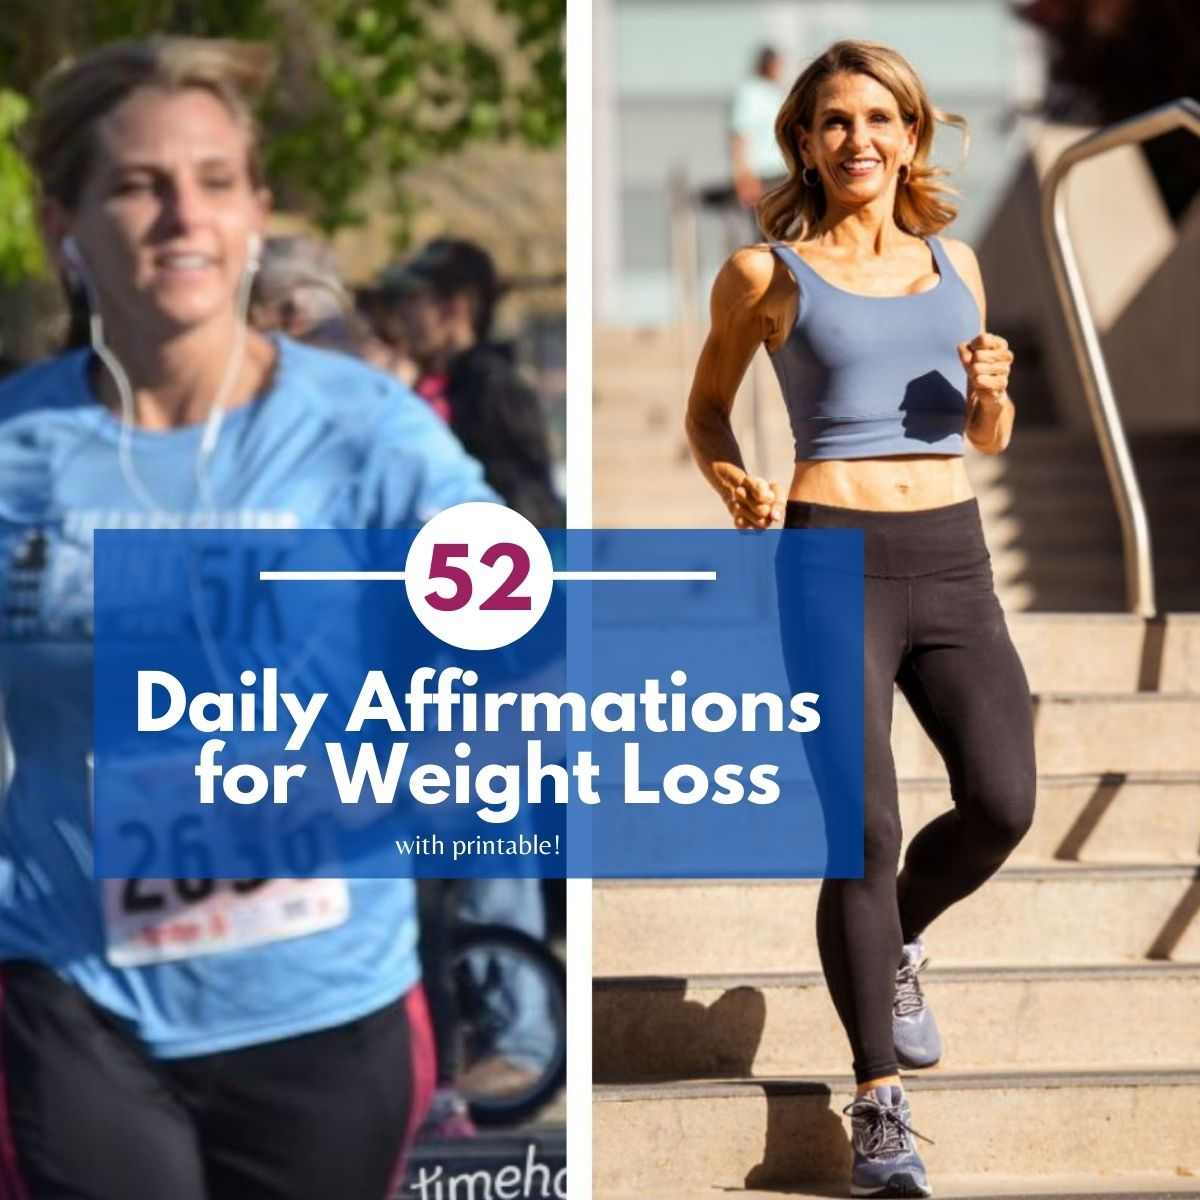 52 daily affirmations for weight loss with a printable thumb